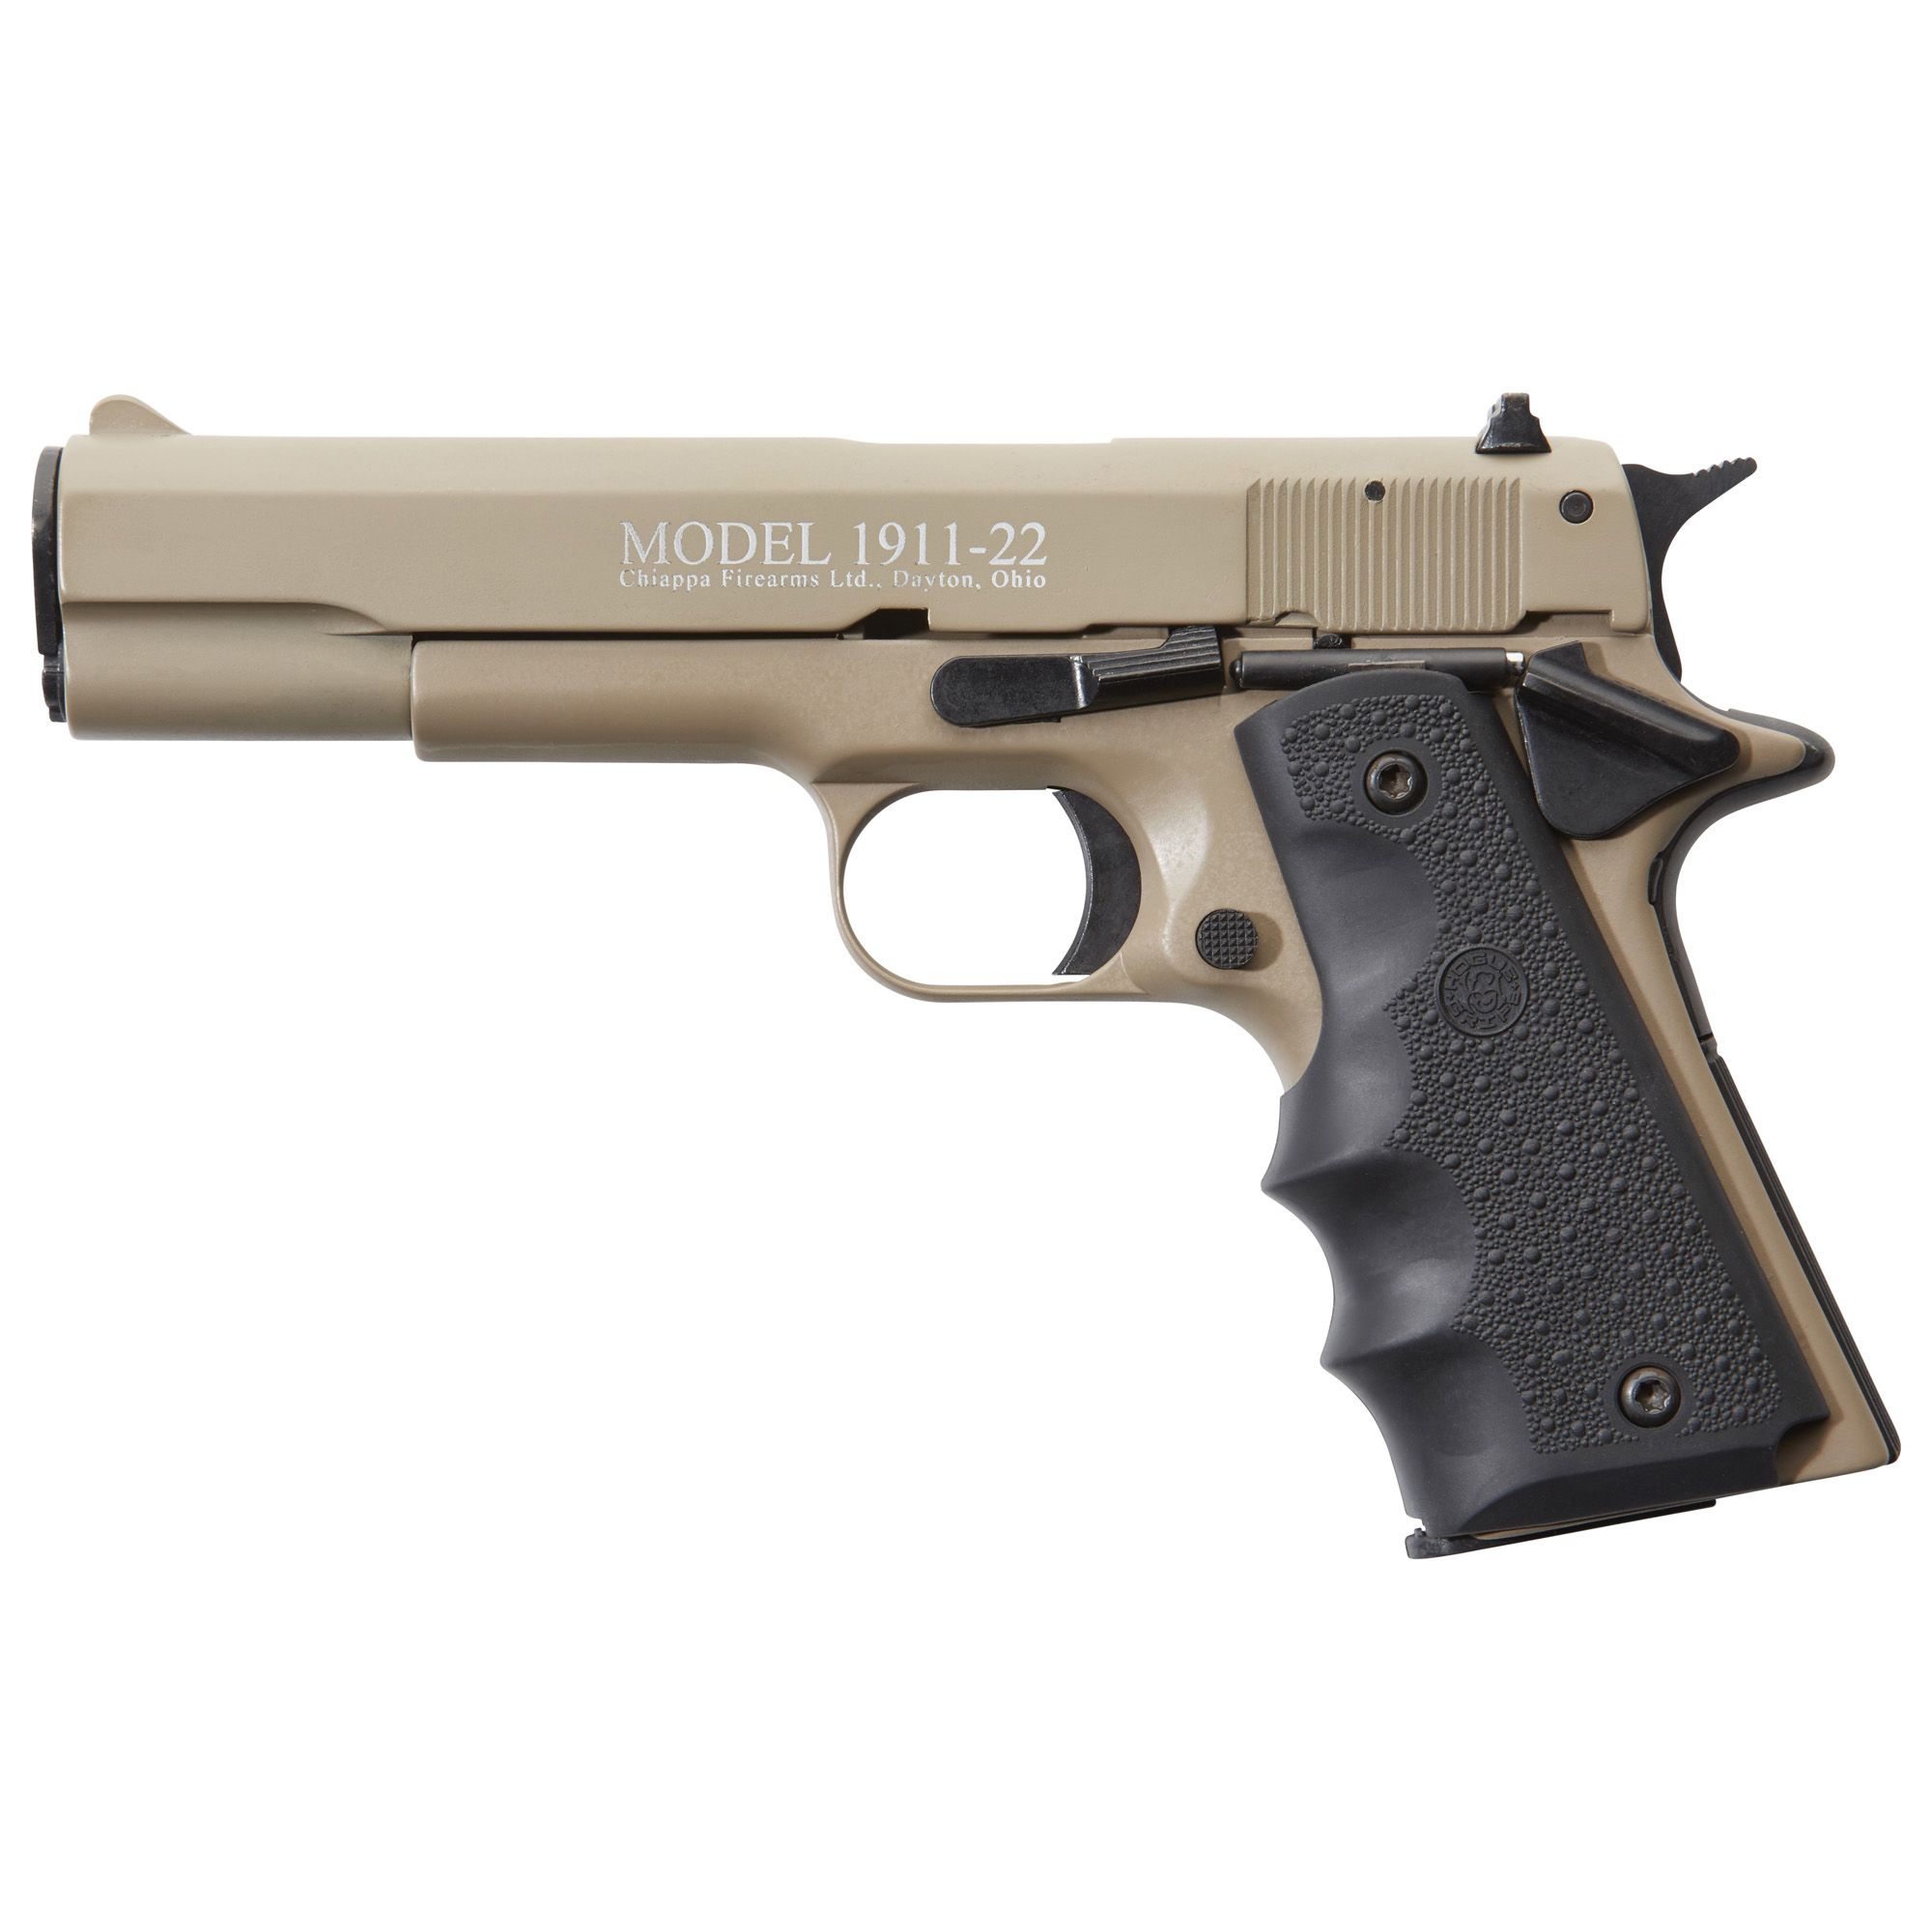 "The 1911 is one of America's favorite pistols. With Chiappa Firearms' 1911-22"" this classic design can come with all of the features"" comfort and appeal but chambered in the easy shooting inexpensive .22lr. These handguns are the same size and have the same controls as a genuine 1911. This makes the Chiappa 1911-22 perfect for serious practicing"" target shooting or plinking."